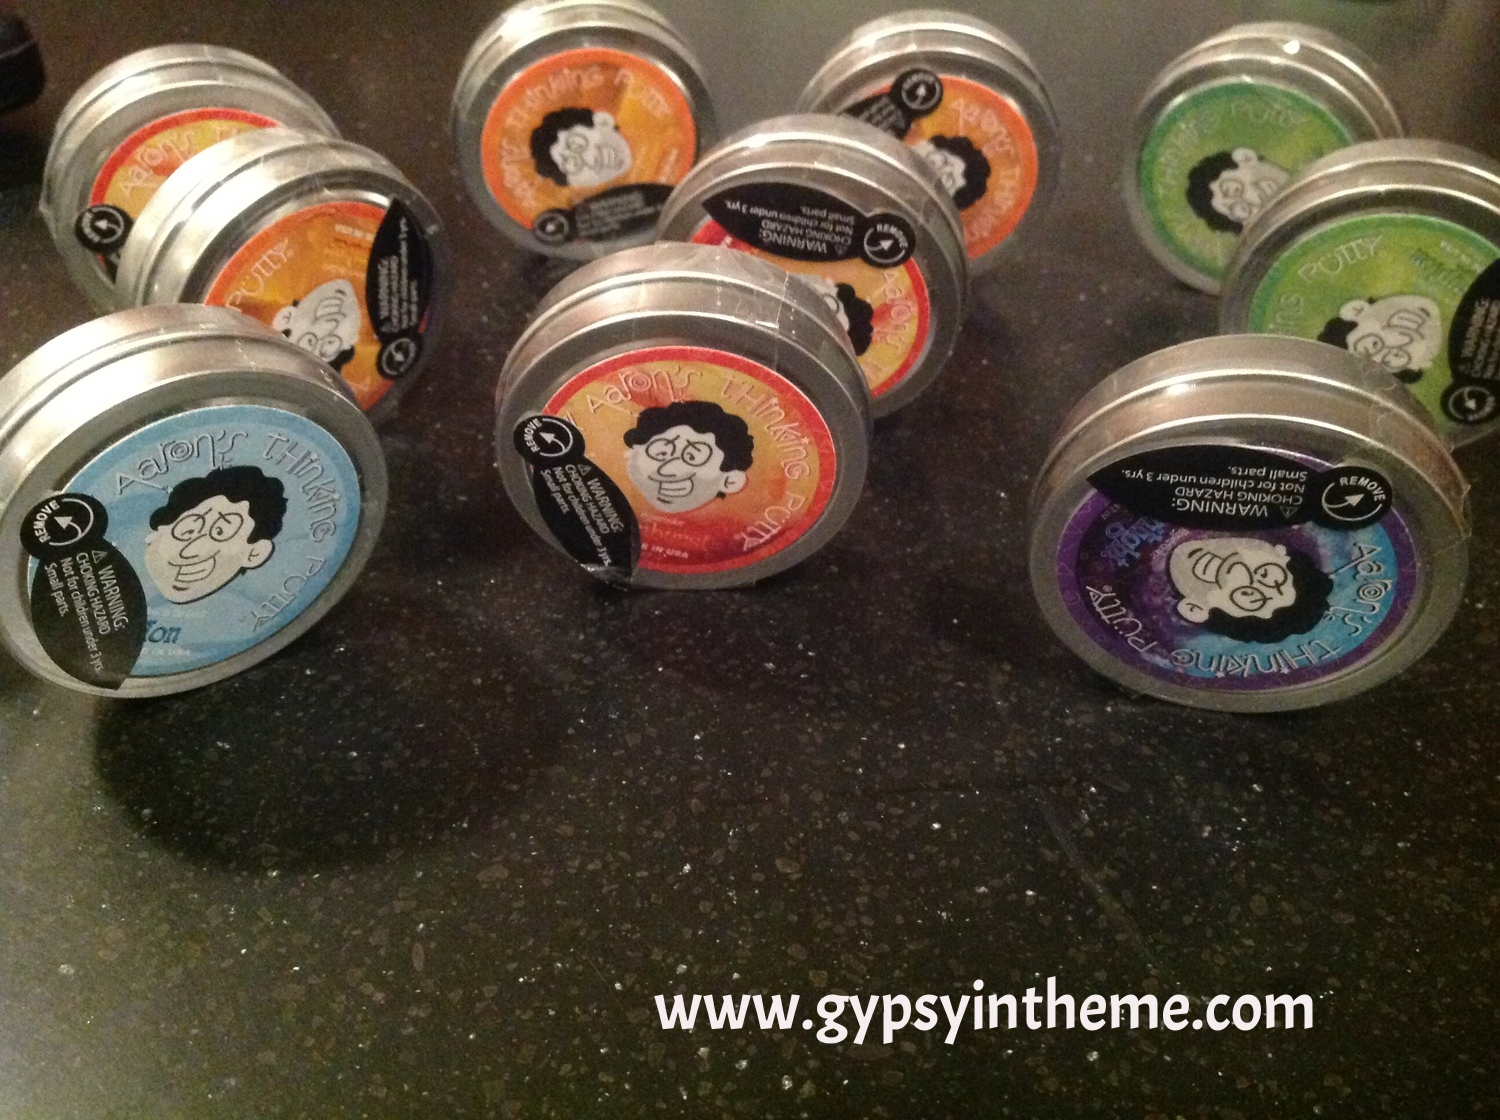 Silly putty party favours for the kids at Summer Camp.